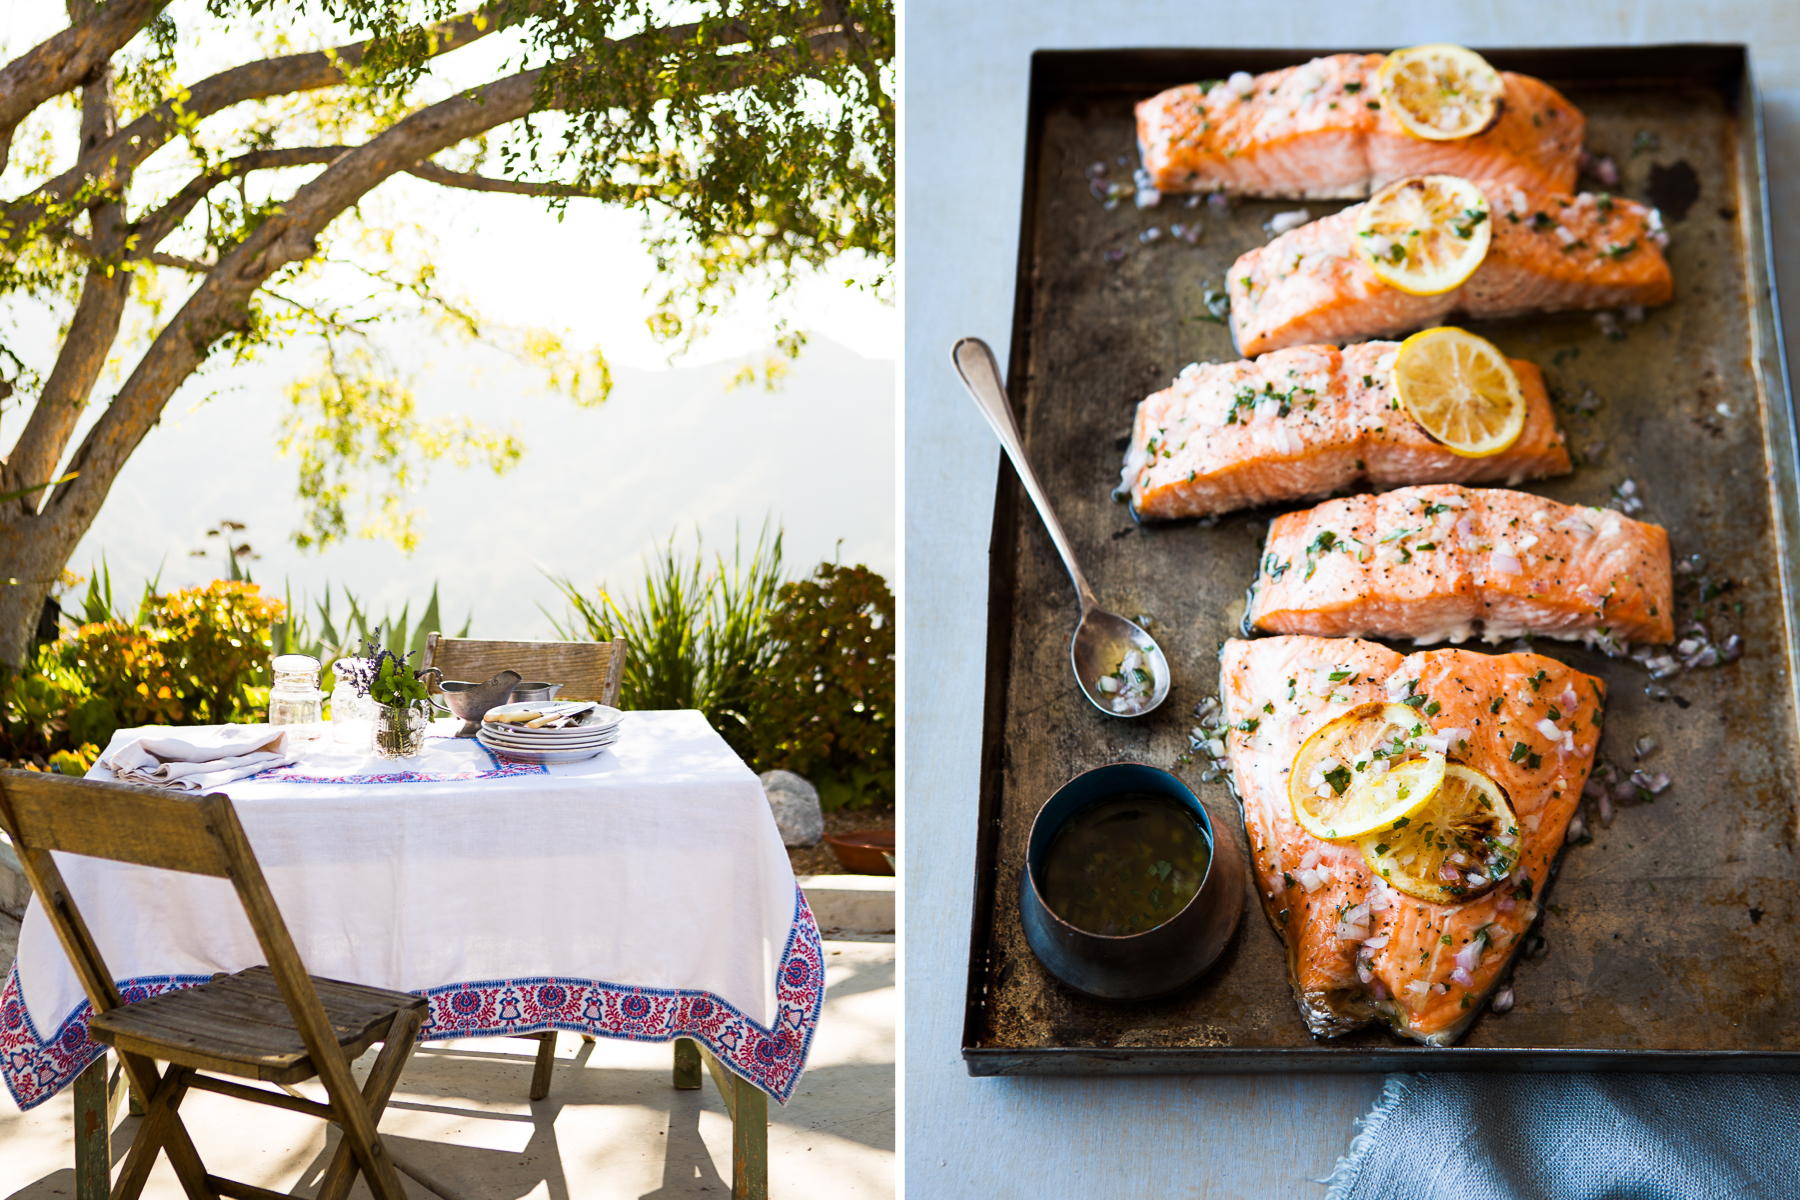 Salmon, outdoor dining.